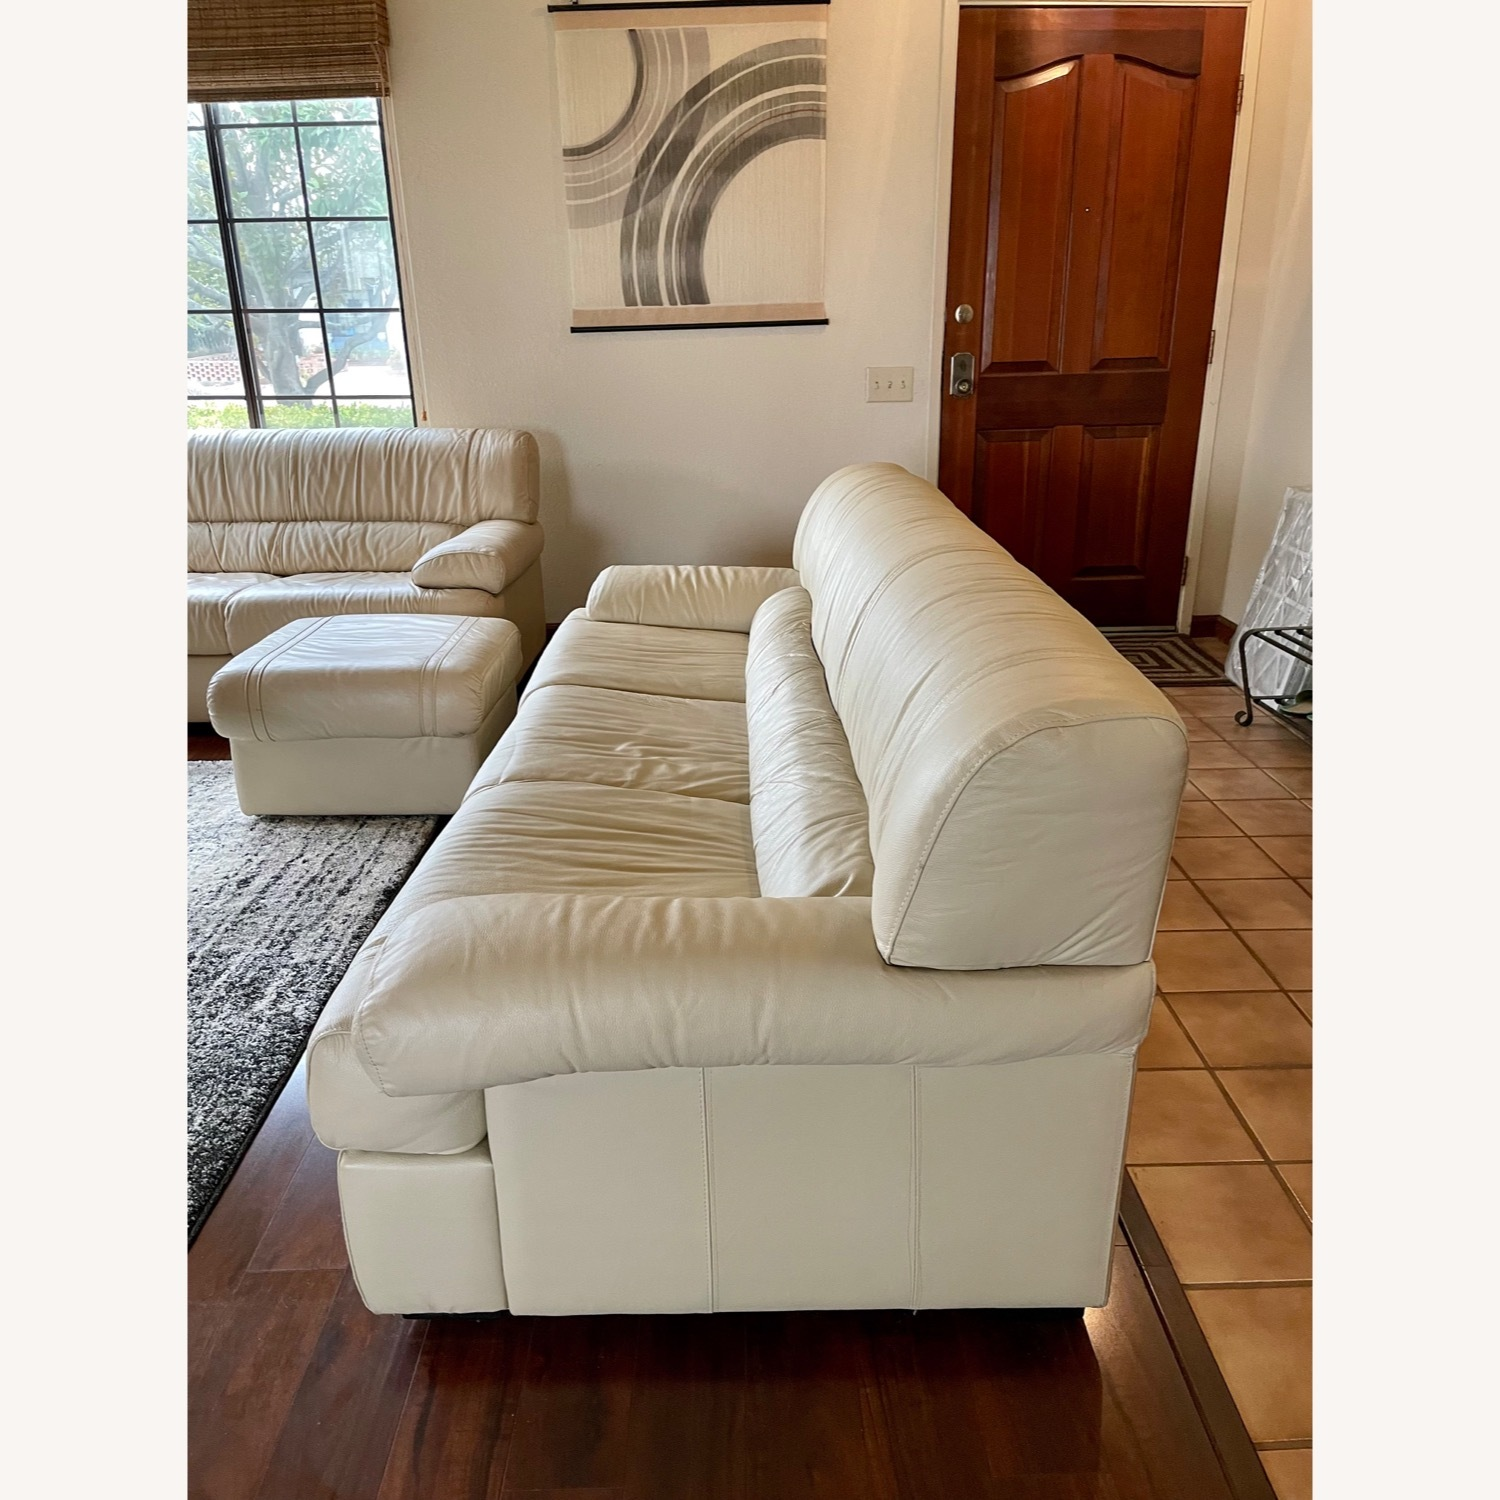 Leather Sofa Set Made in Italy - image-2